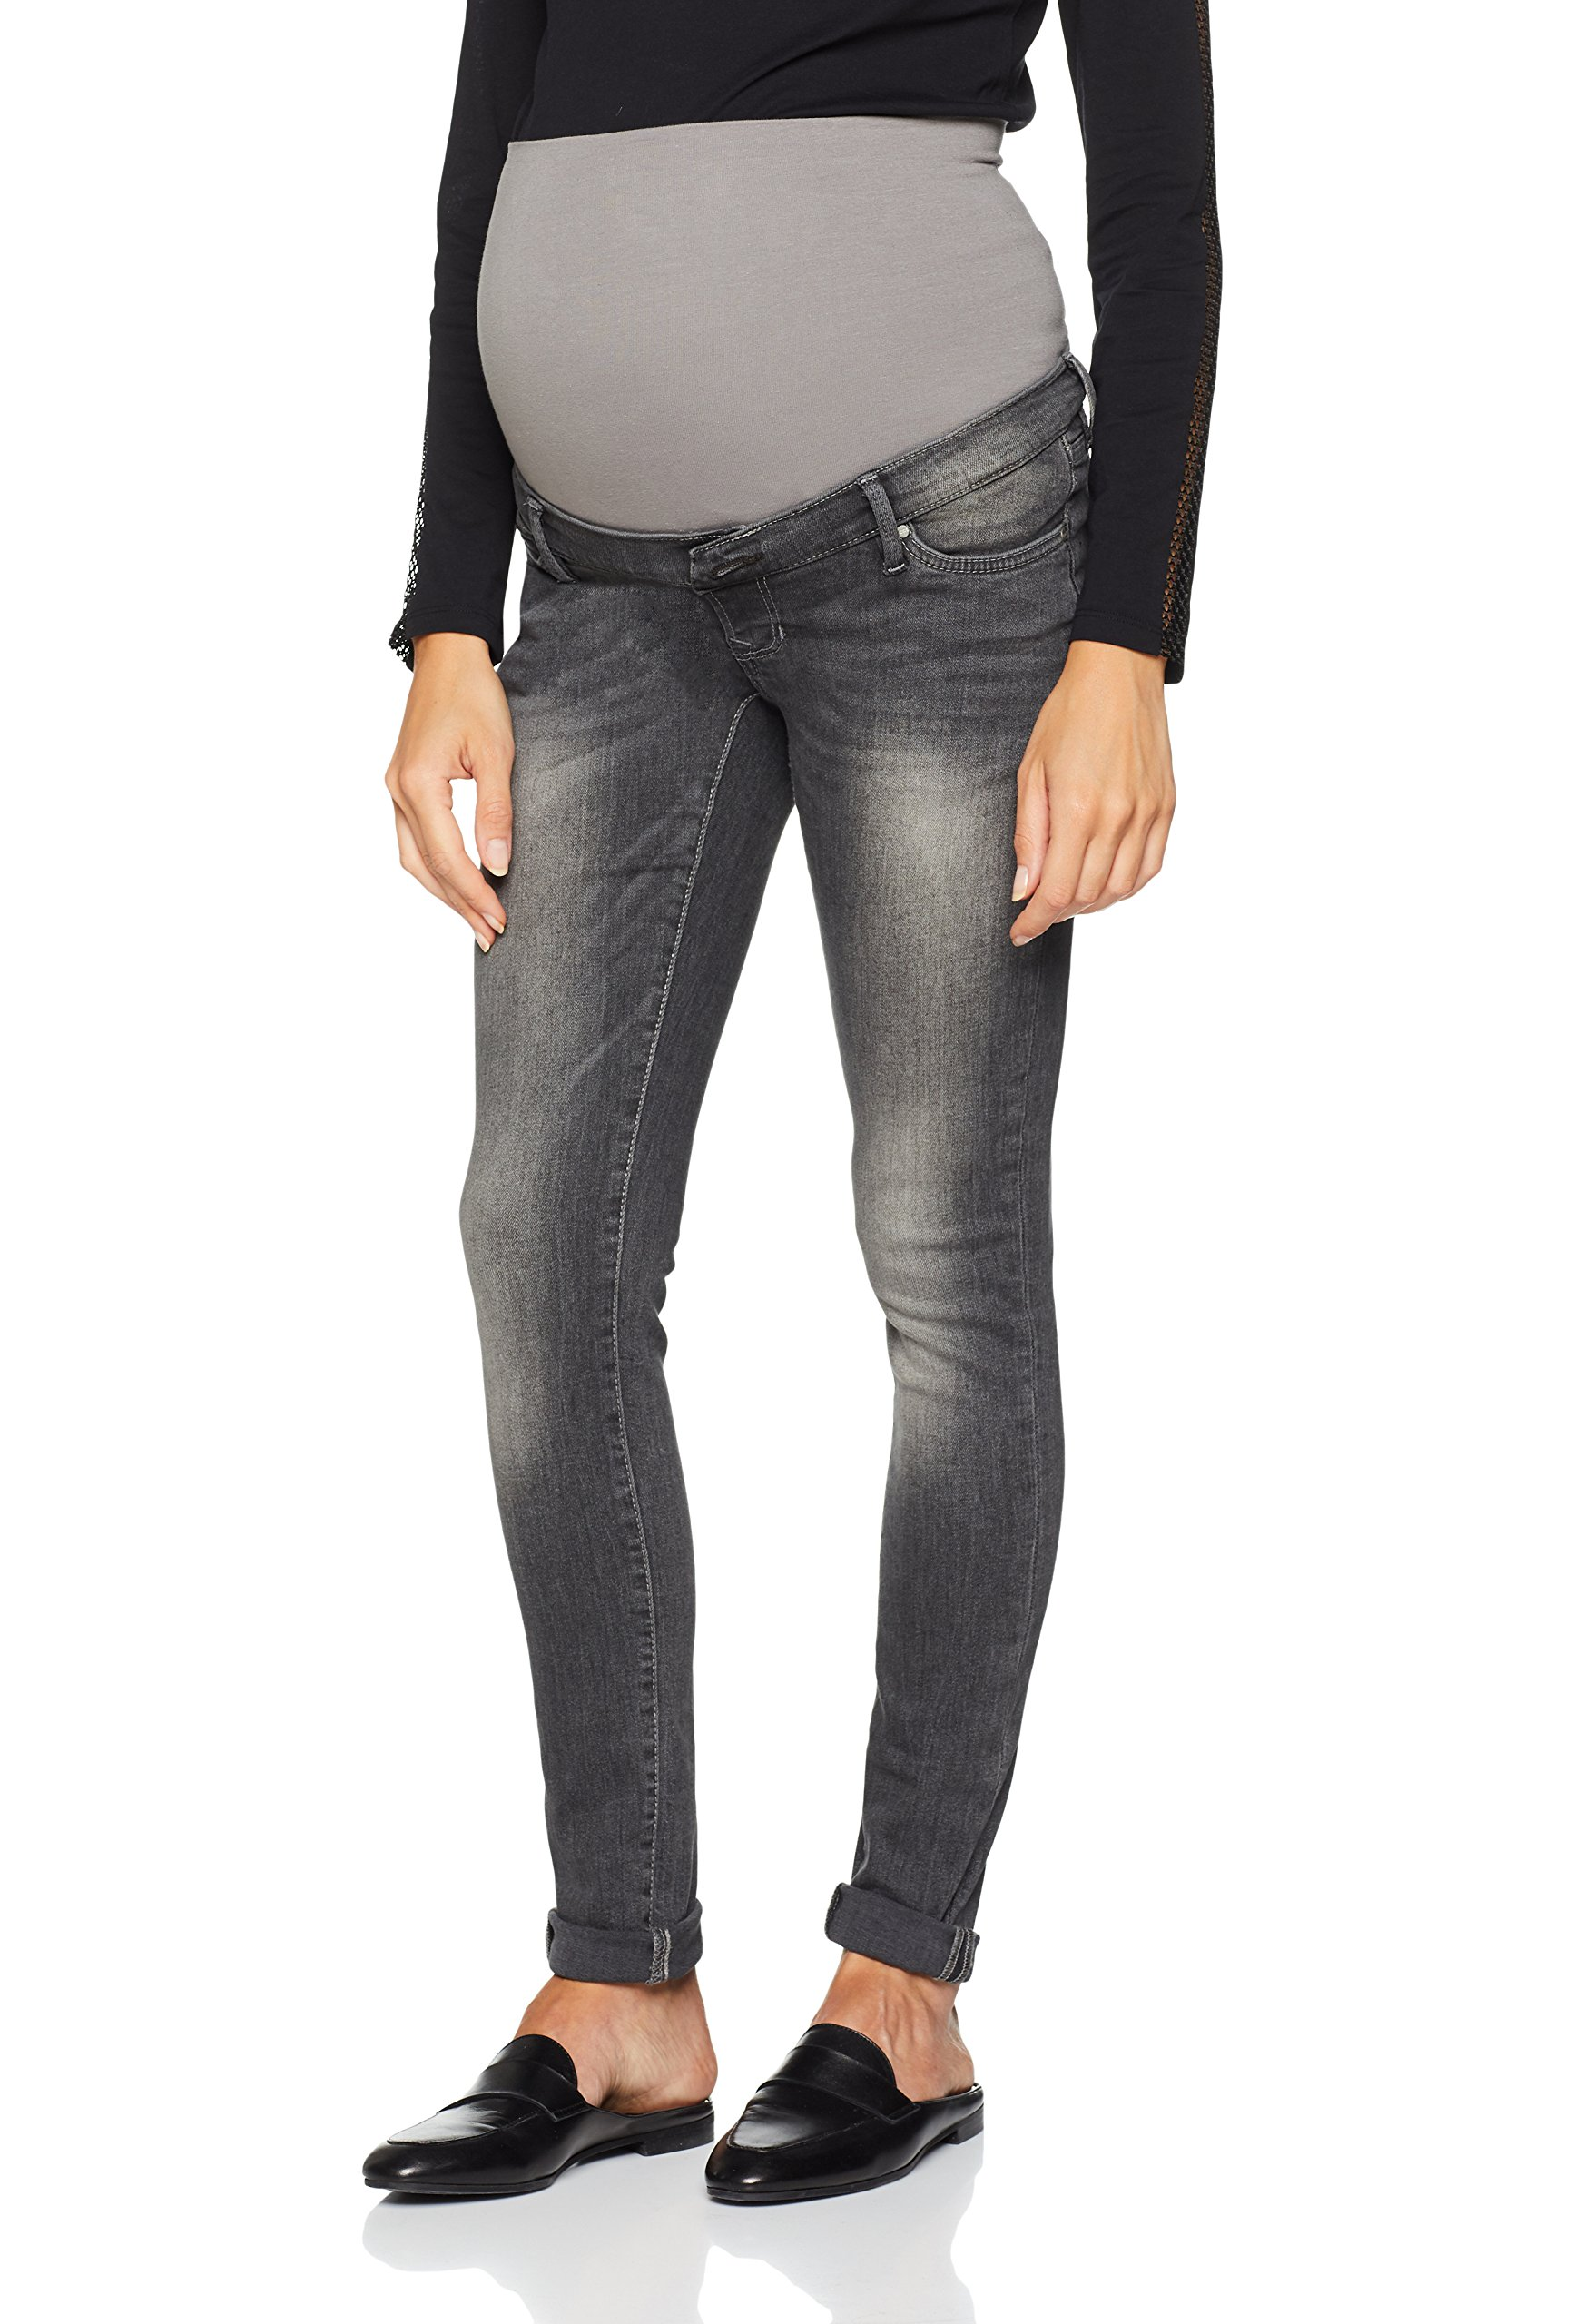 Jeans Noppies Skinny C33428w Otb X Avi MaternitéGris 32l Everyday Grey Femme ZTkiwuXPOl